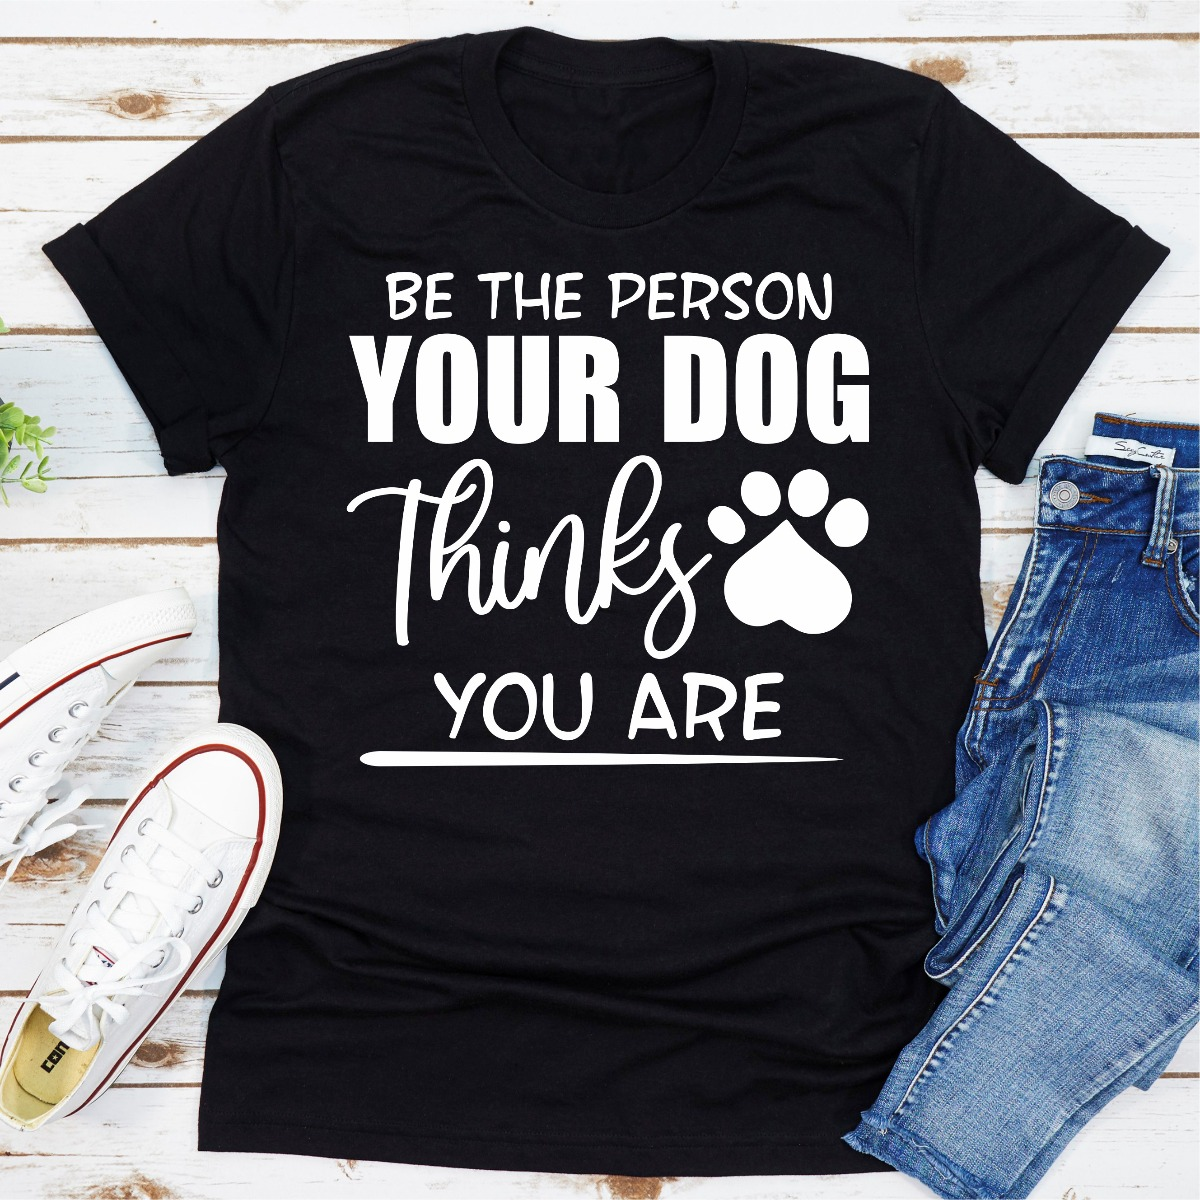 Be The Person Your Dog Thinks You Are (Black / L)